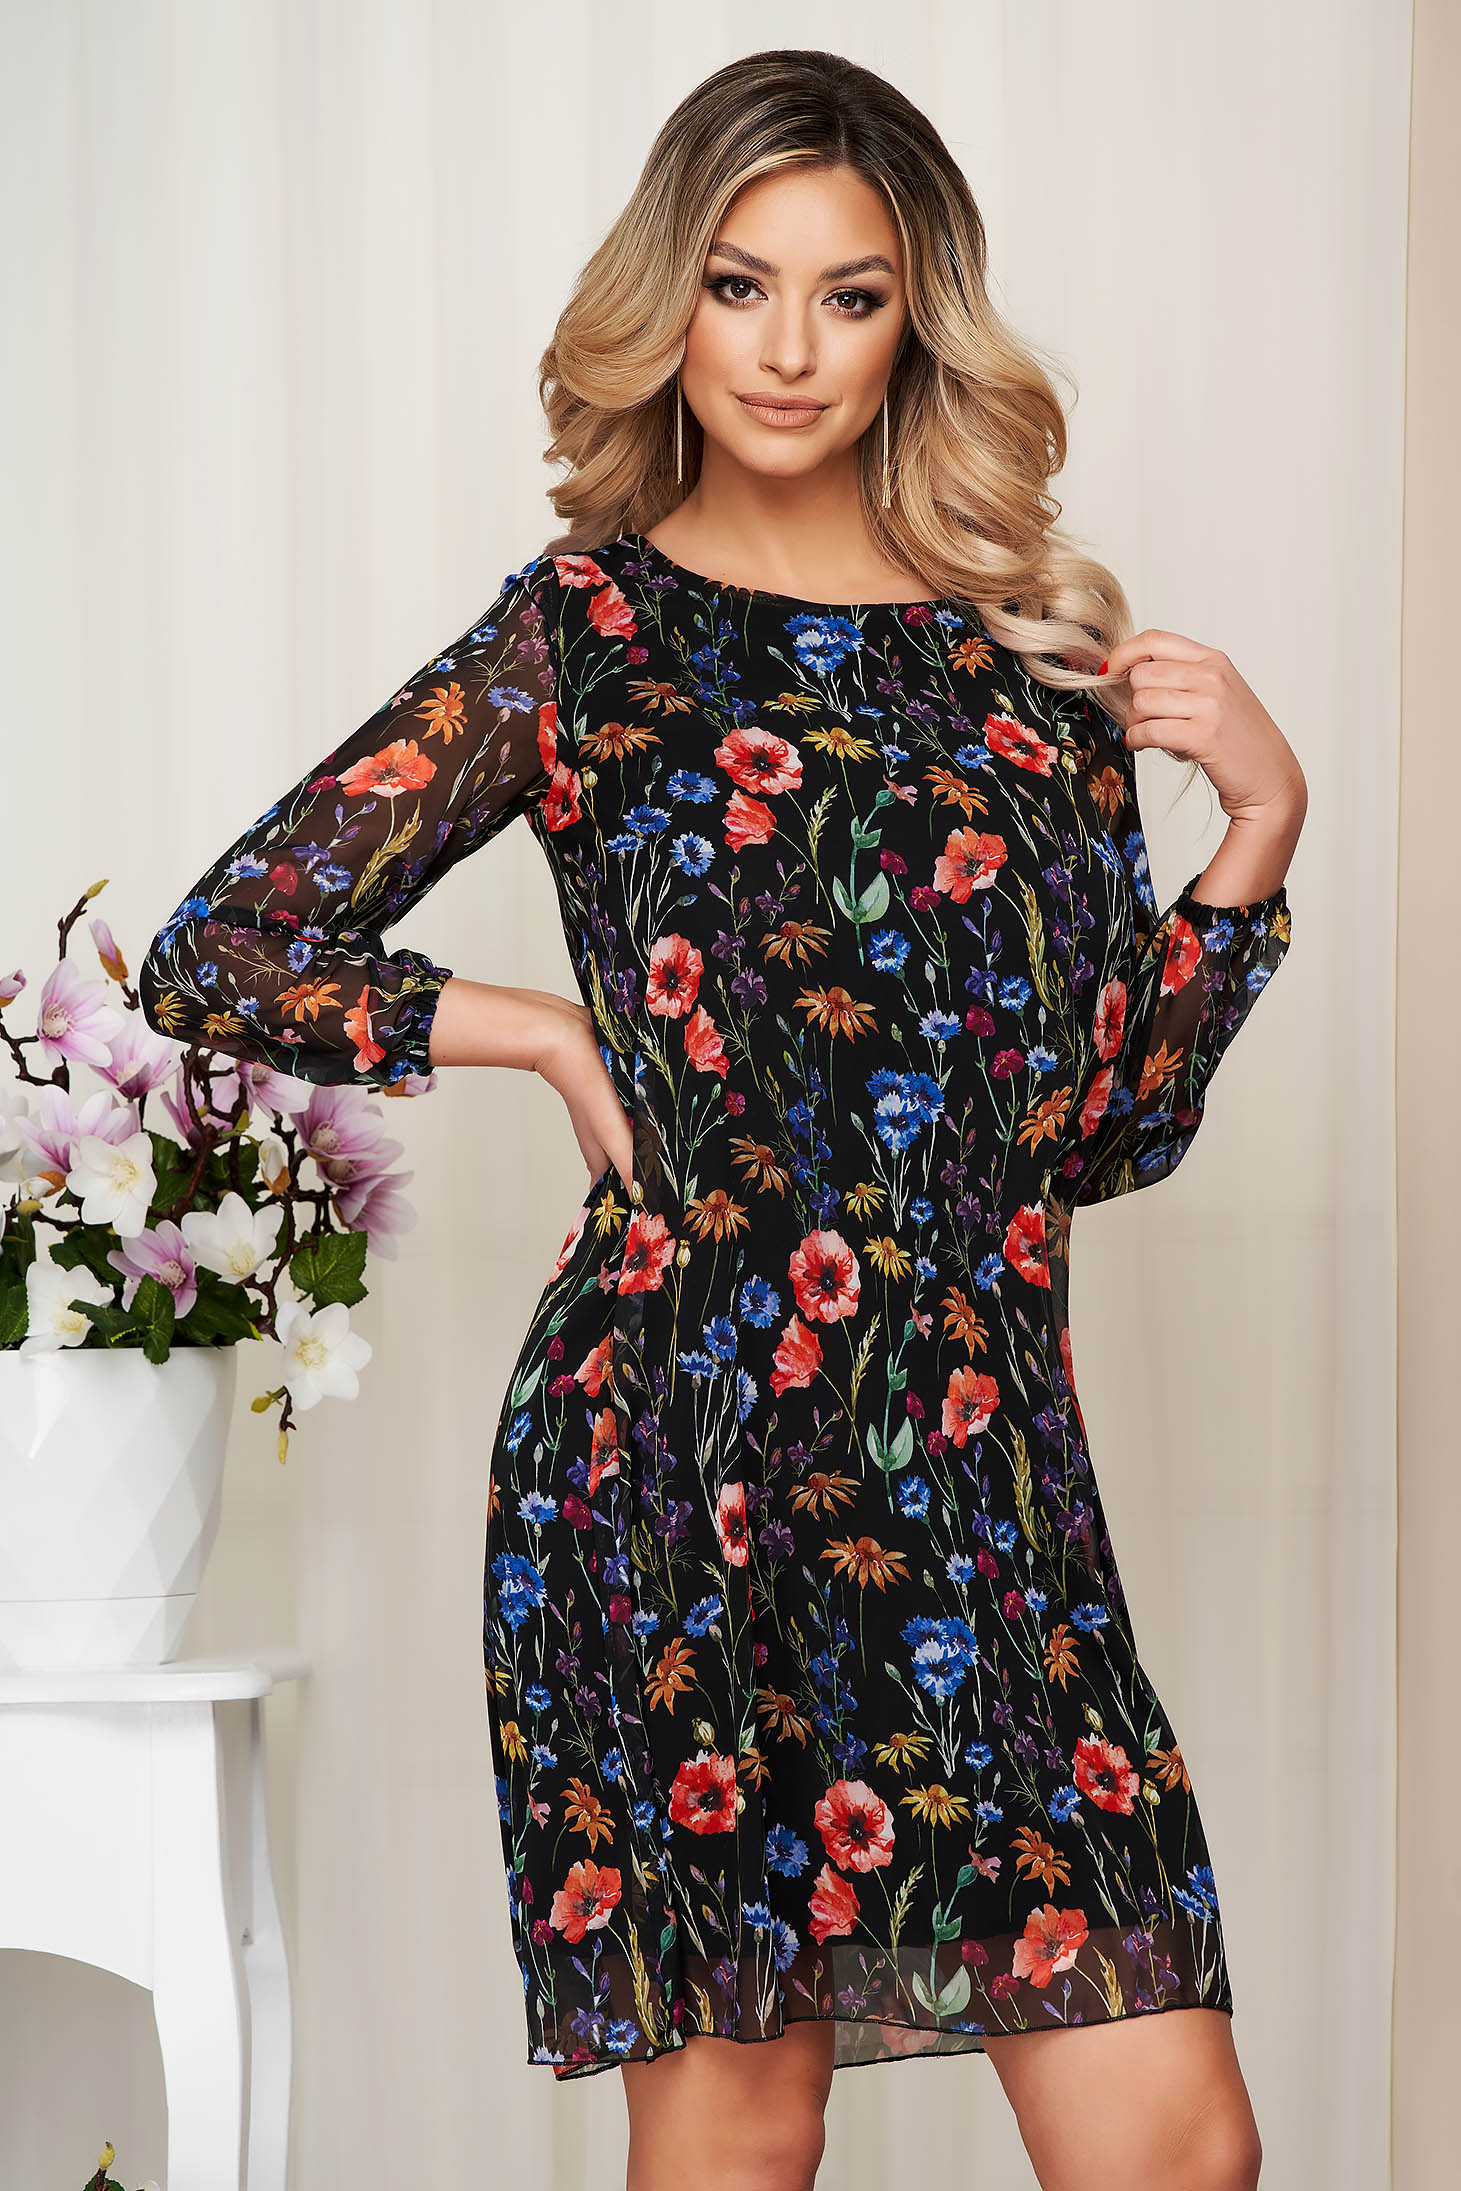 Black dress from veil fabric with floral print with inside lining